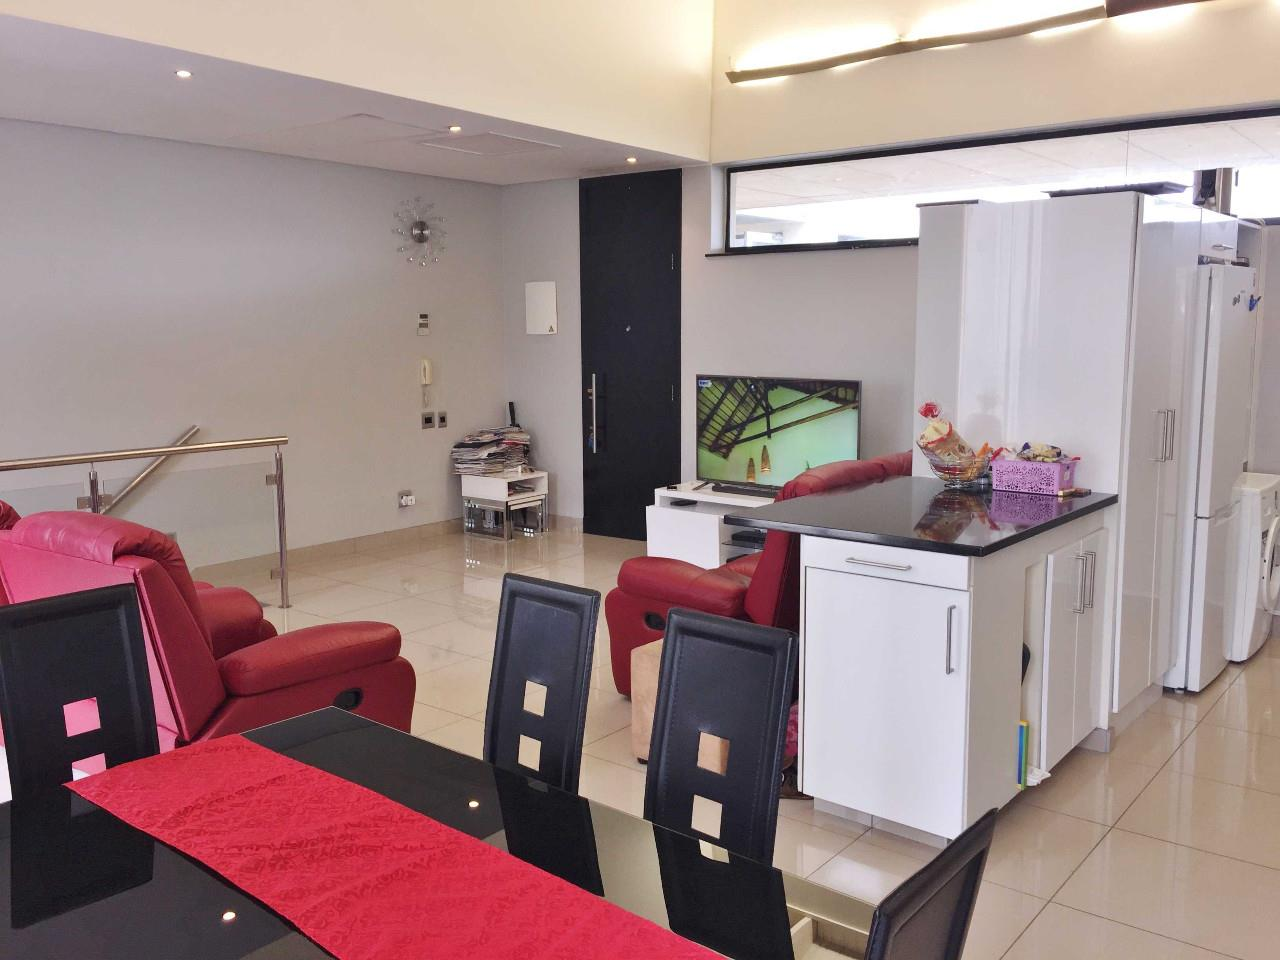 3 Bedroom Apartment / Flat For Sale in Umhlanga Ridge